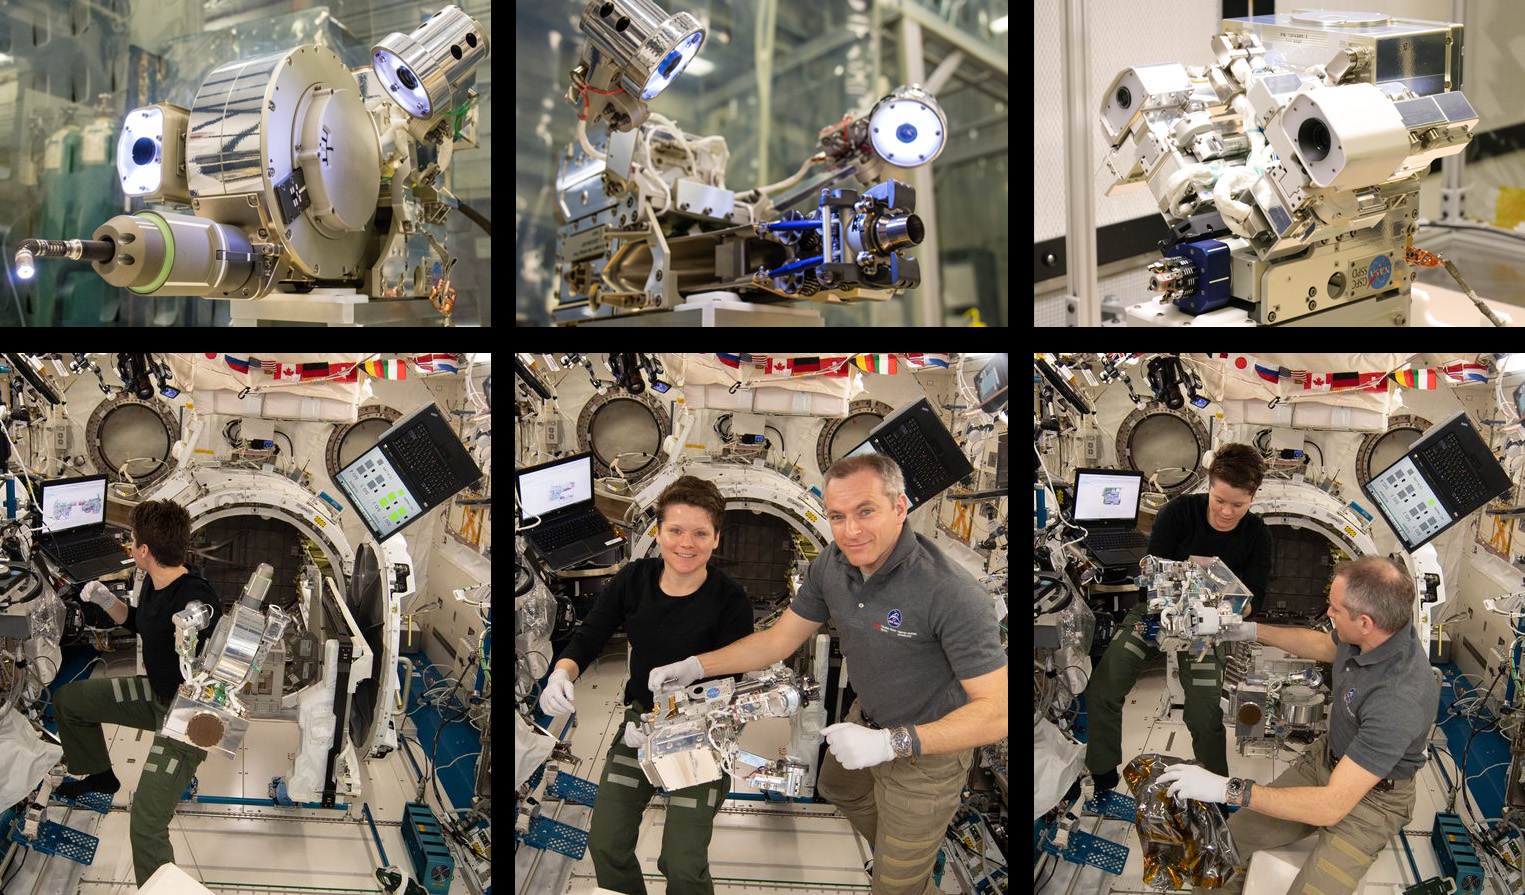 NASA astronaut Anne McClain and Canadian Space Agency astronaut David Saint-Jacques work to assemble the tools for the Robotic Refueling Mission 3 experiment. Credit: NASA